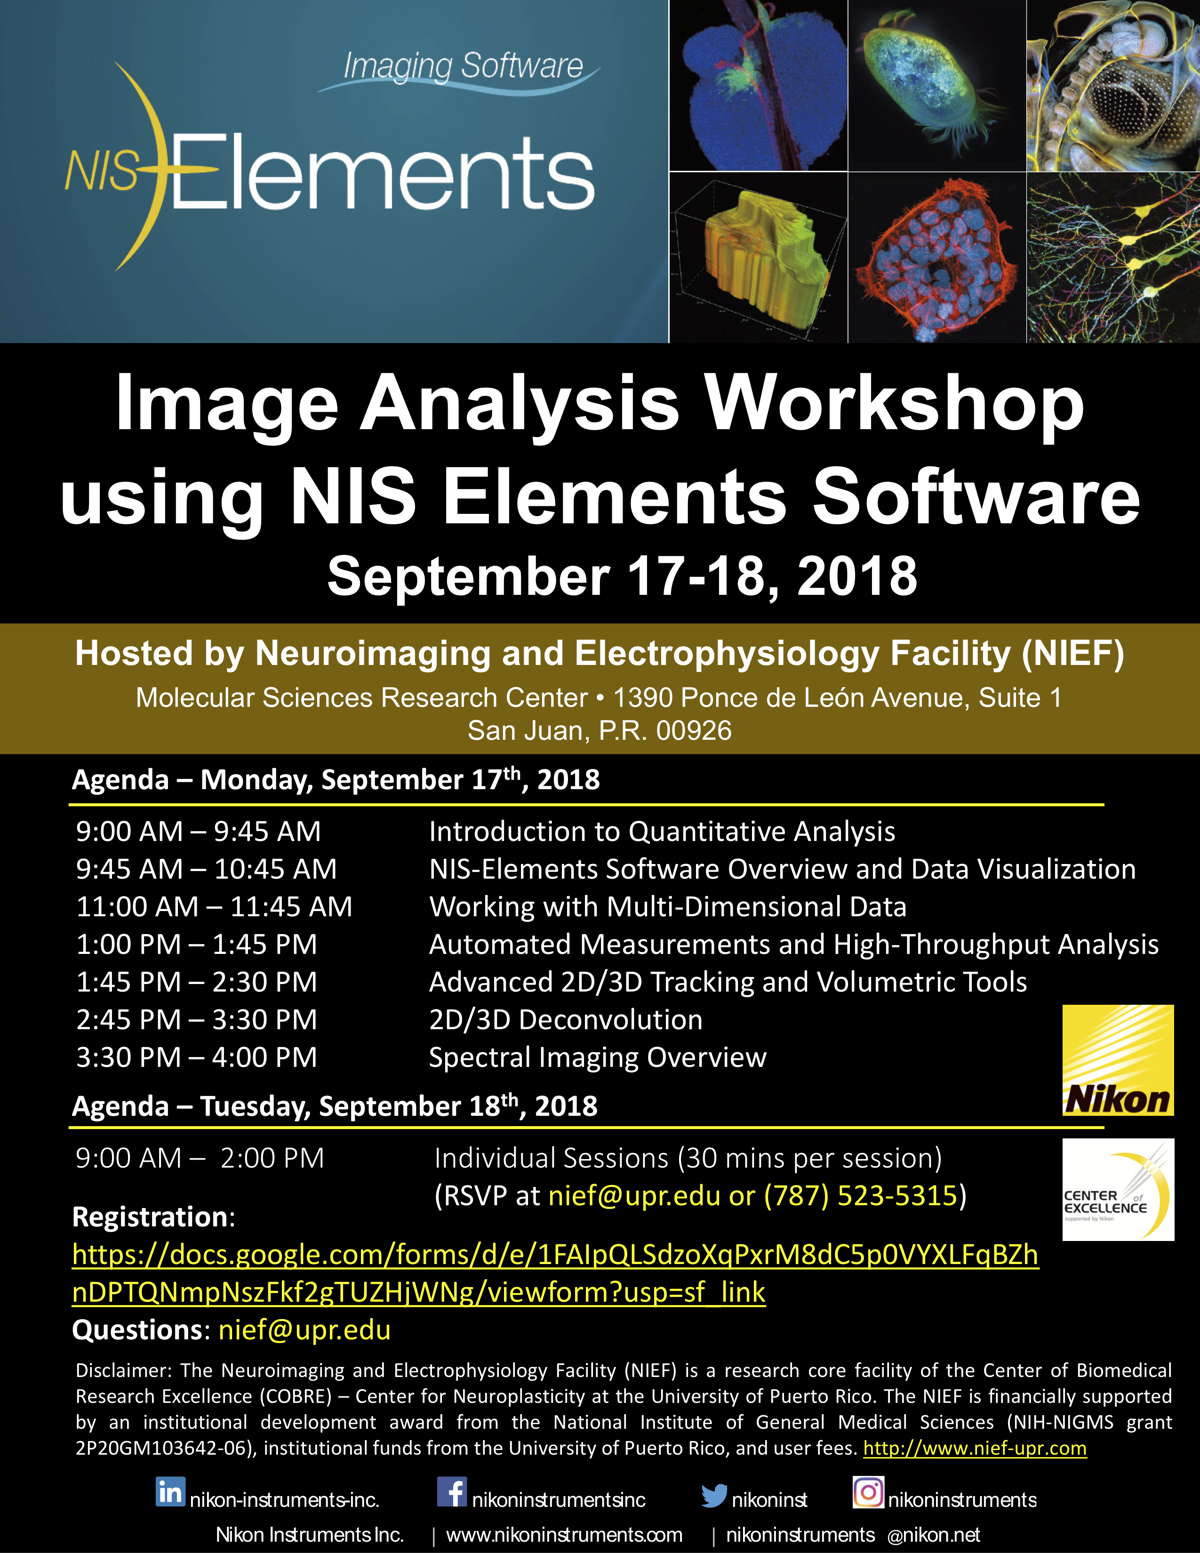 NIS Elements workshop